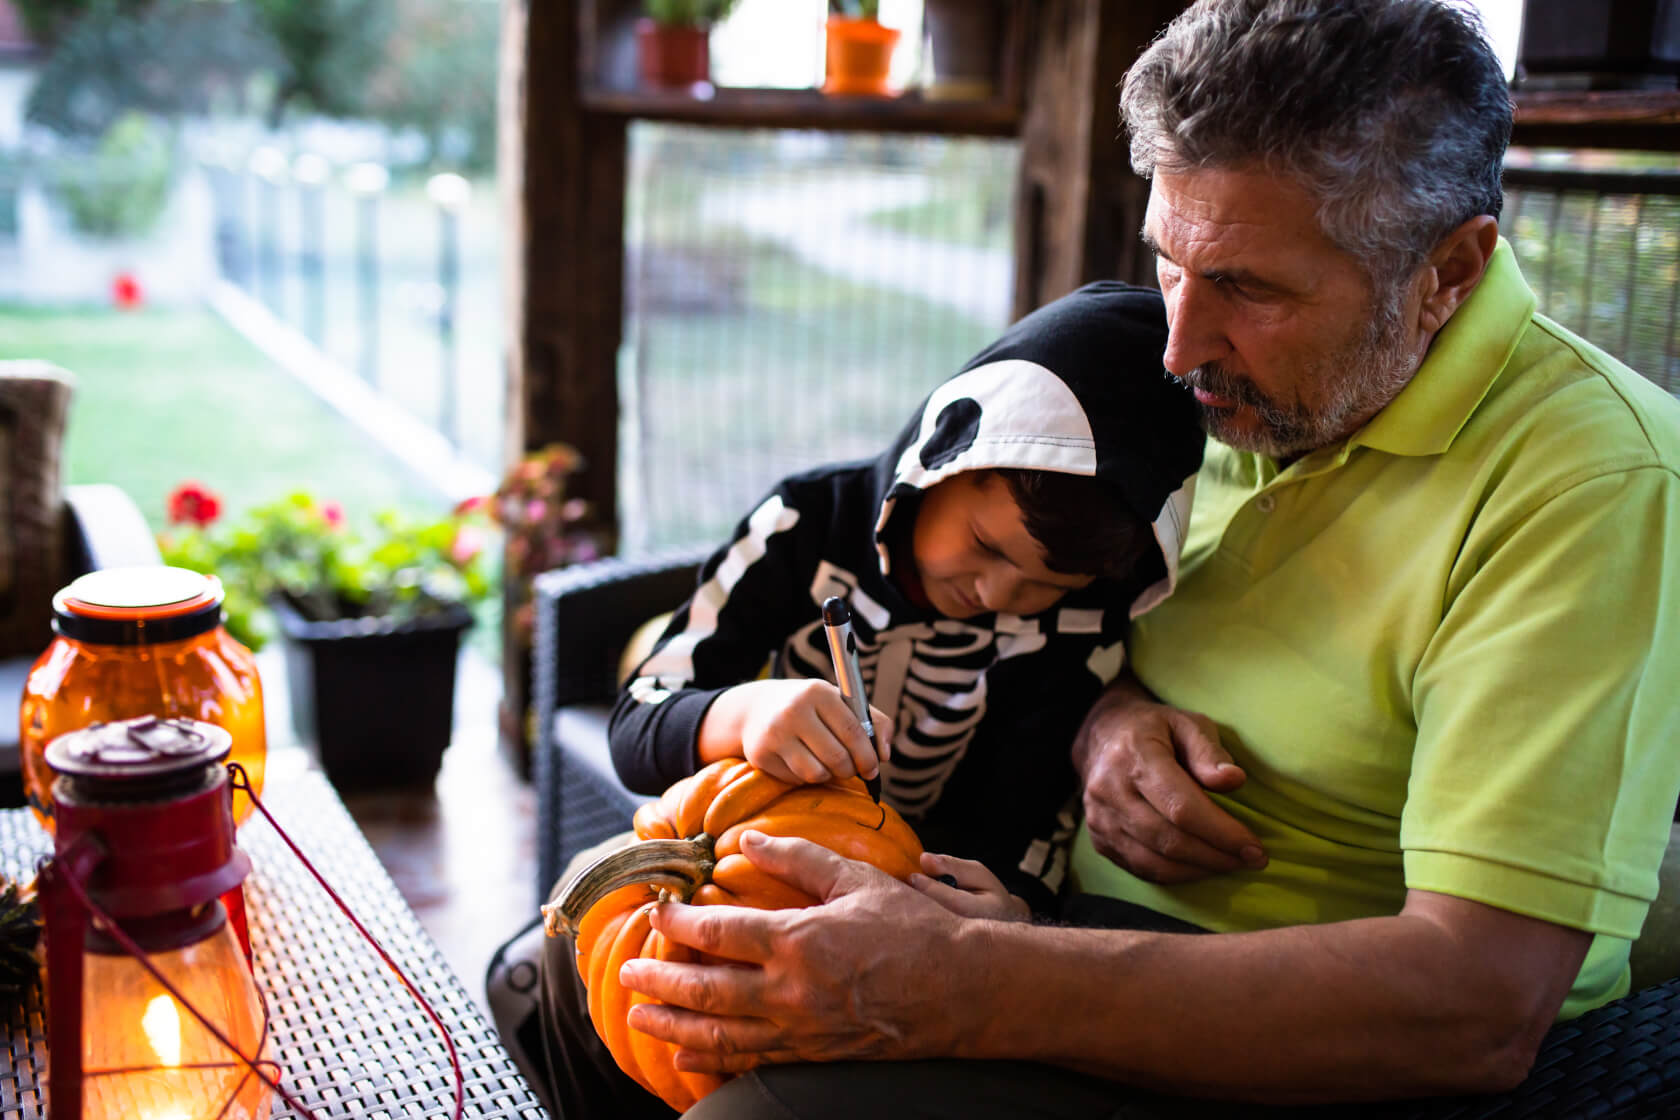 Senior man sitting with young grandson in skeleton costume, getting ready to carve a pumpkin